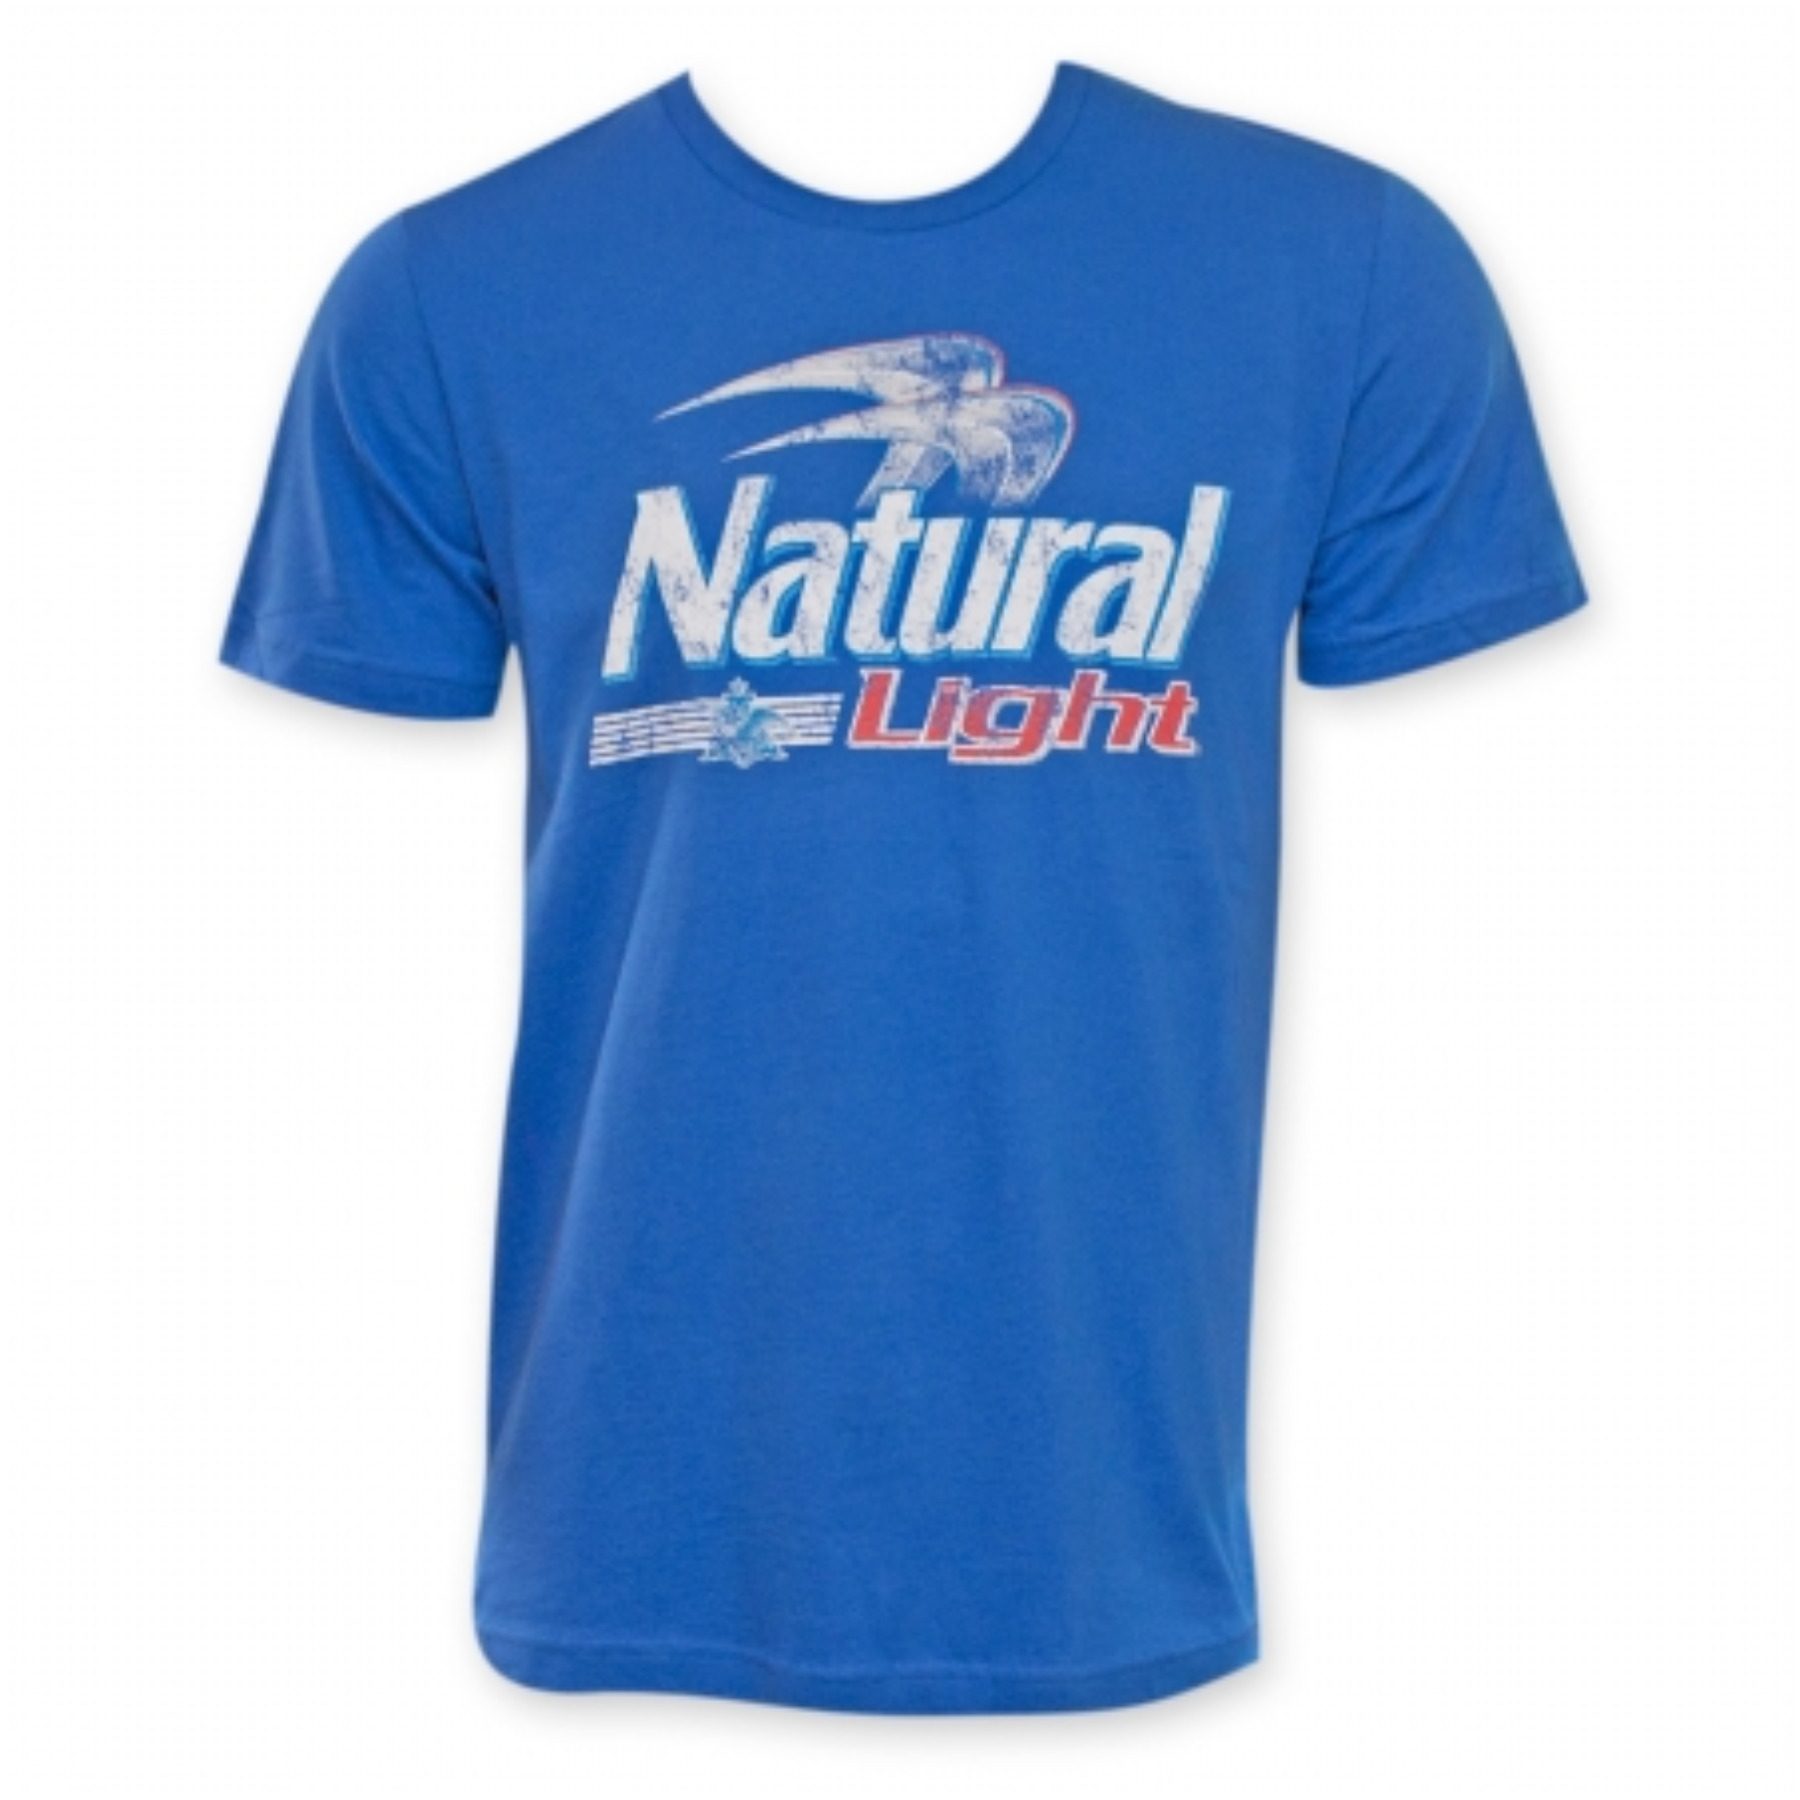 Natural light 24273xl mens blue logo t shirt extra large Light blue t shirt mens